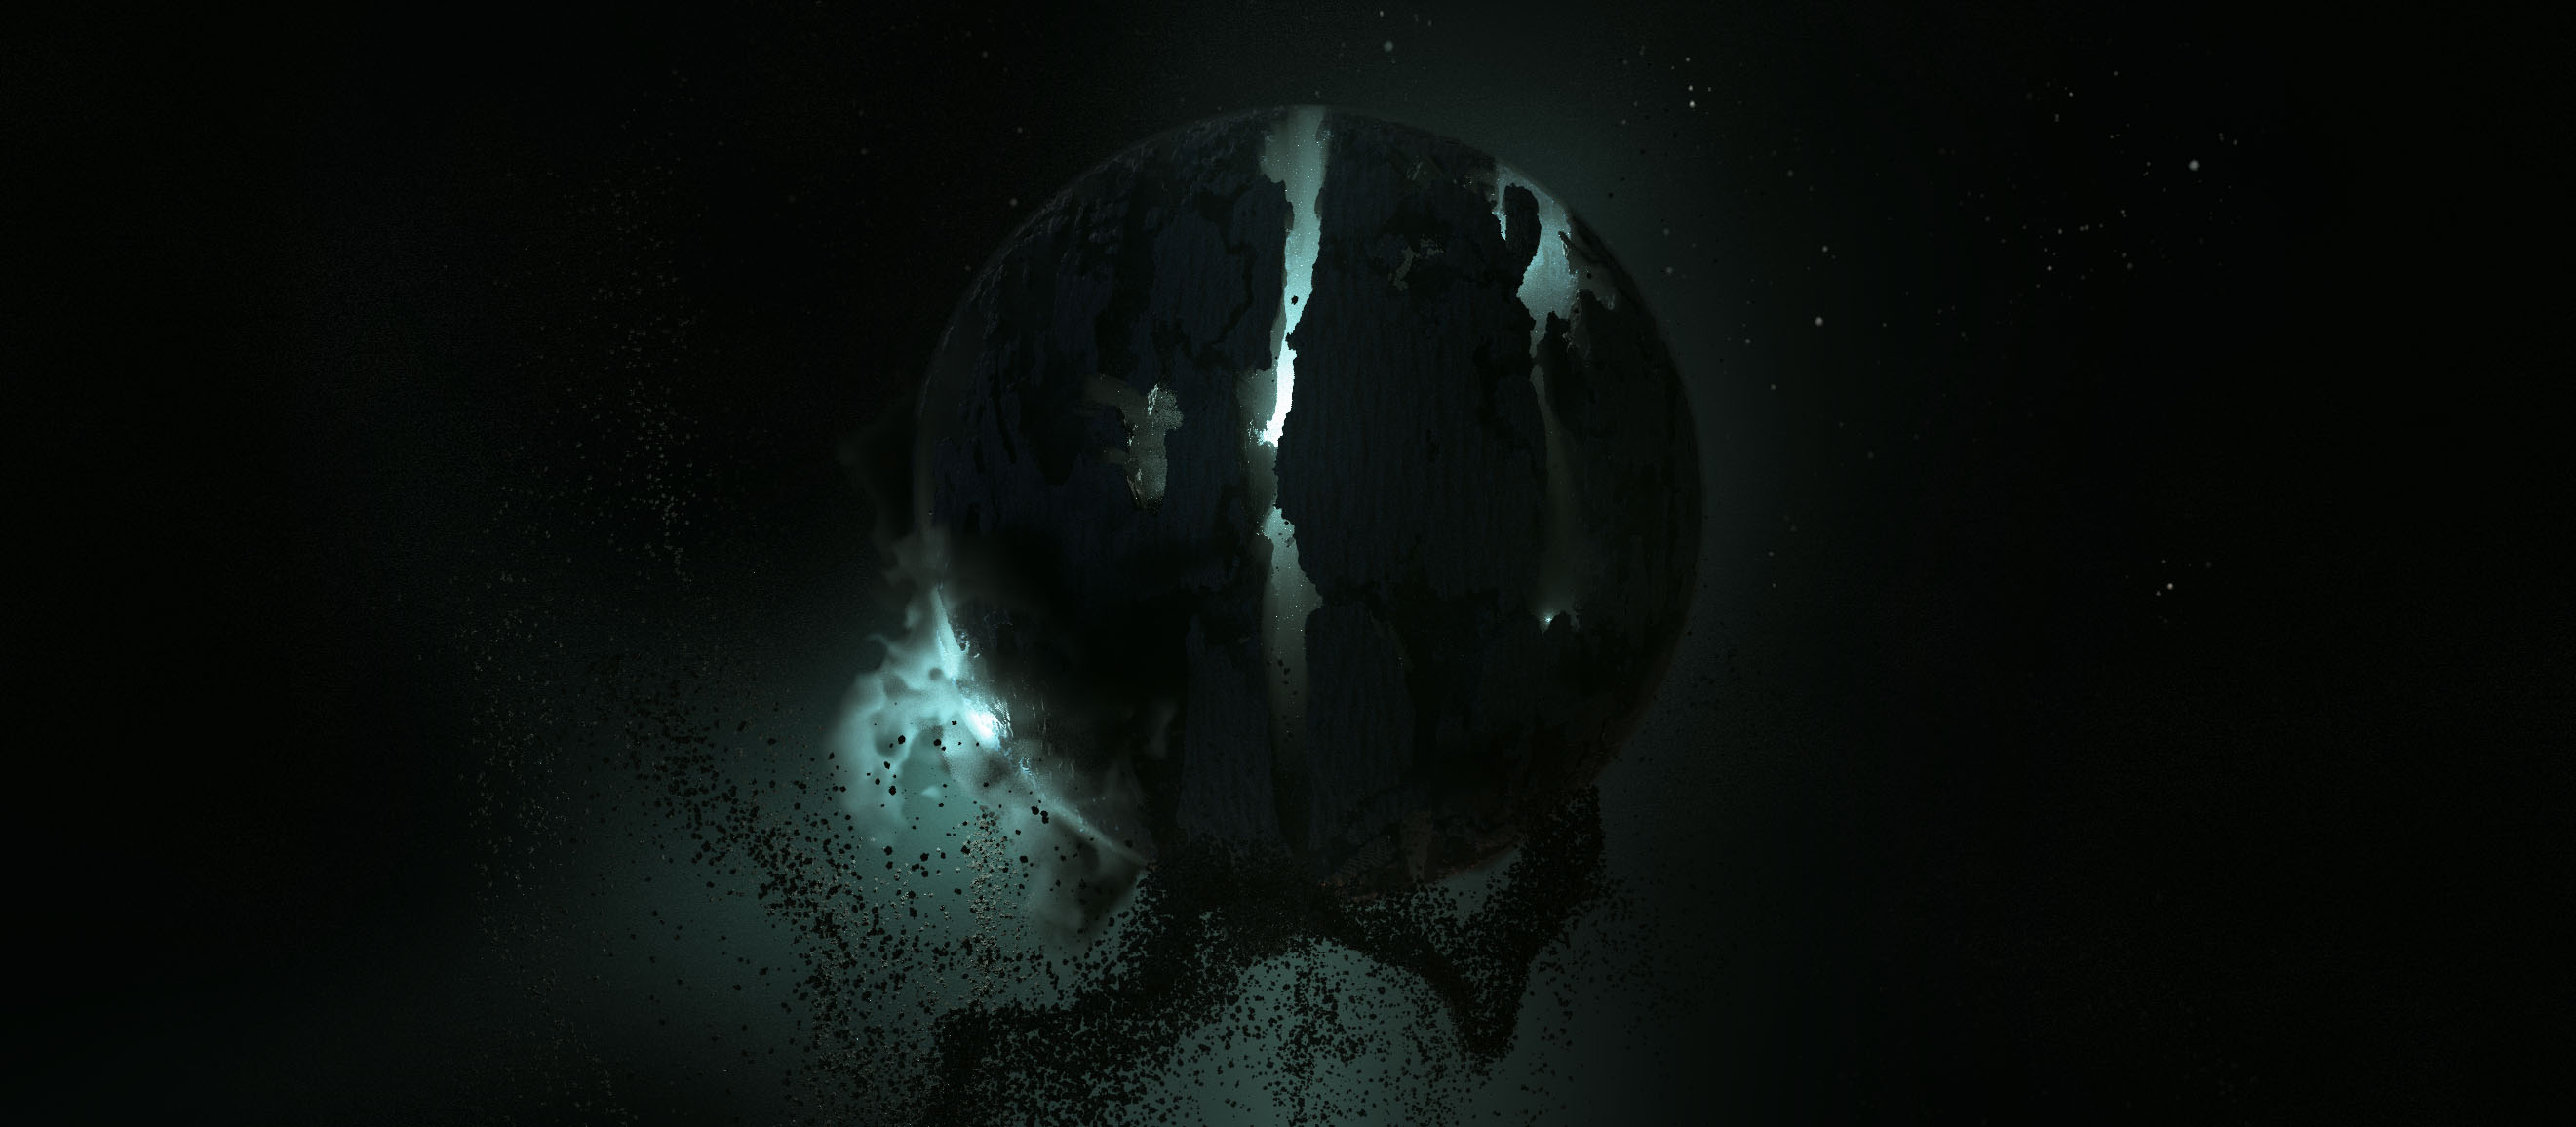 planet_lighting_WIP_01_v001.jpg